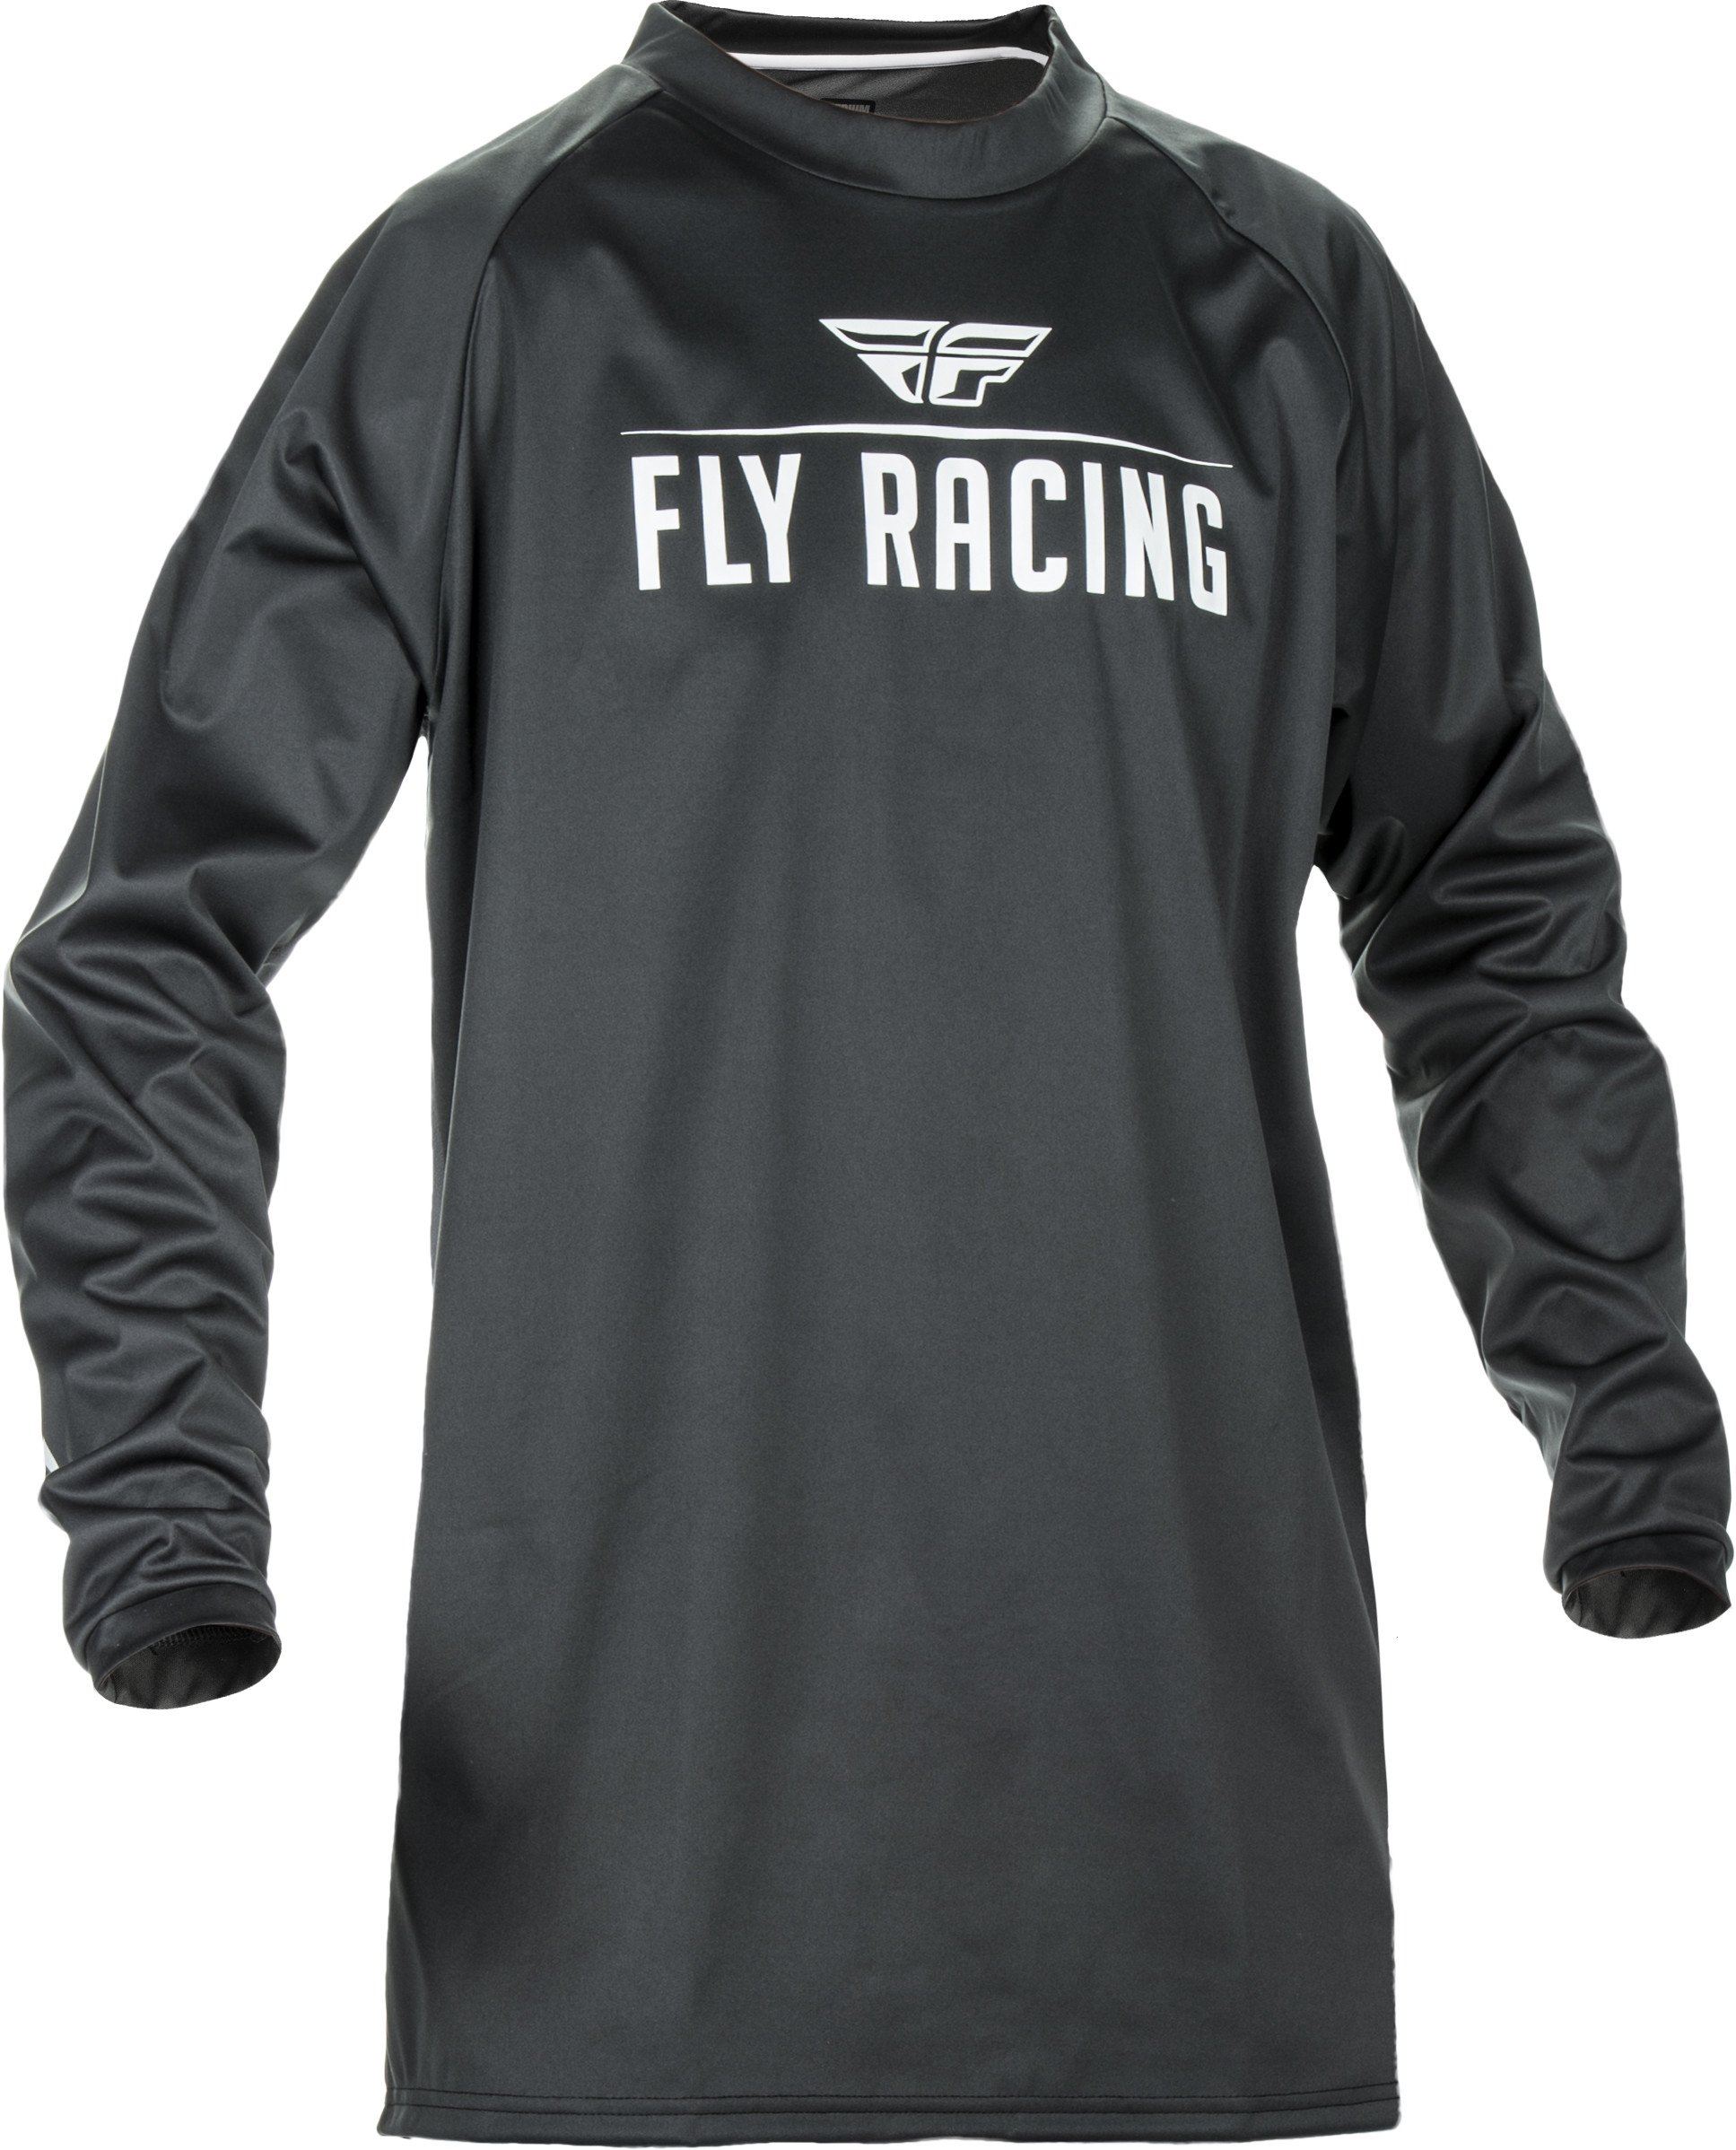 Black/Grey Sz XXL Fly Racing Windproof Motocross Jersey